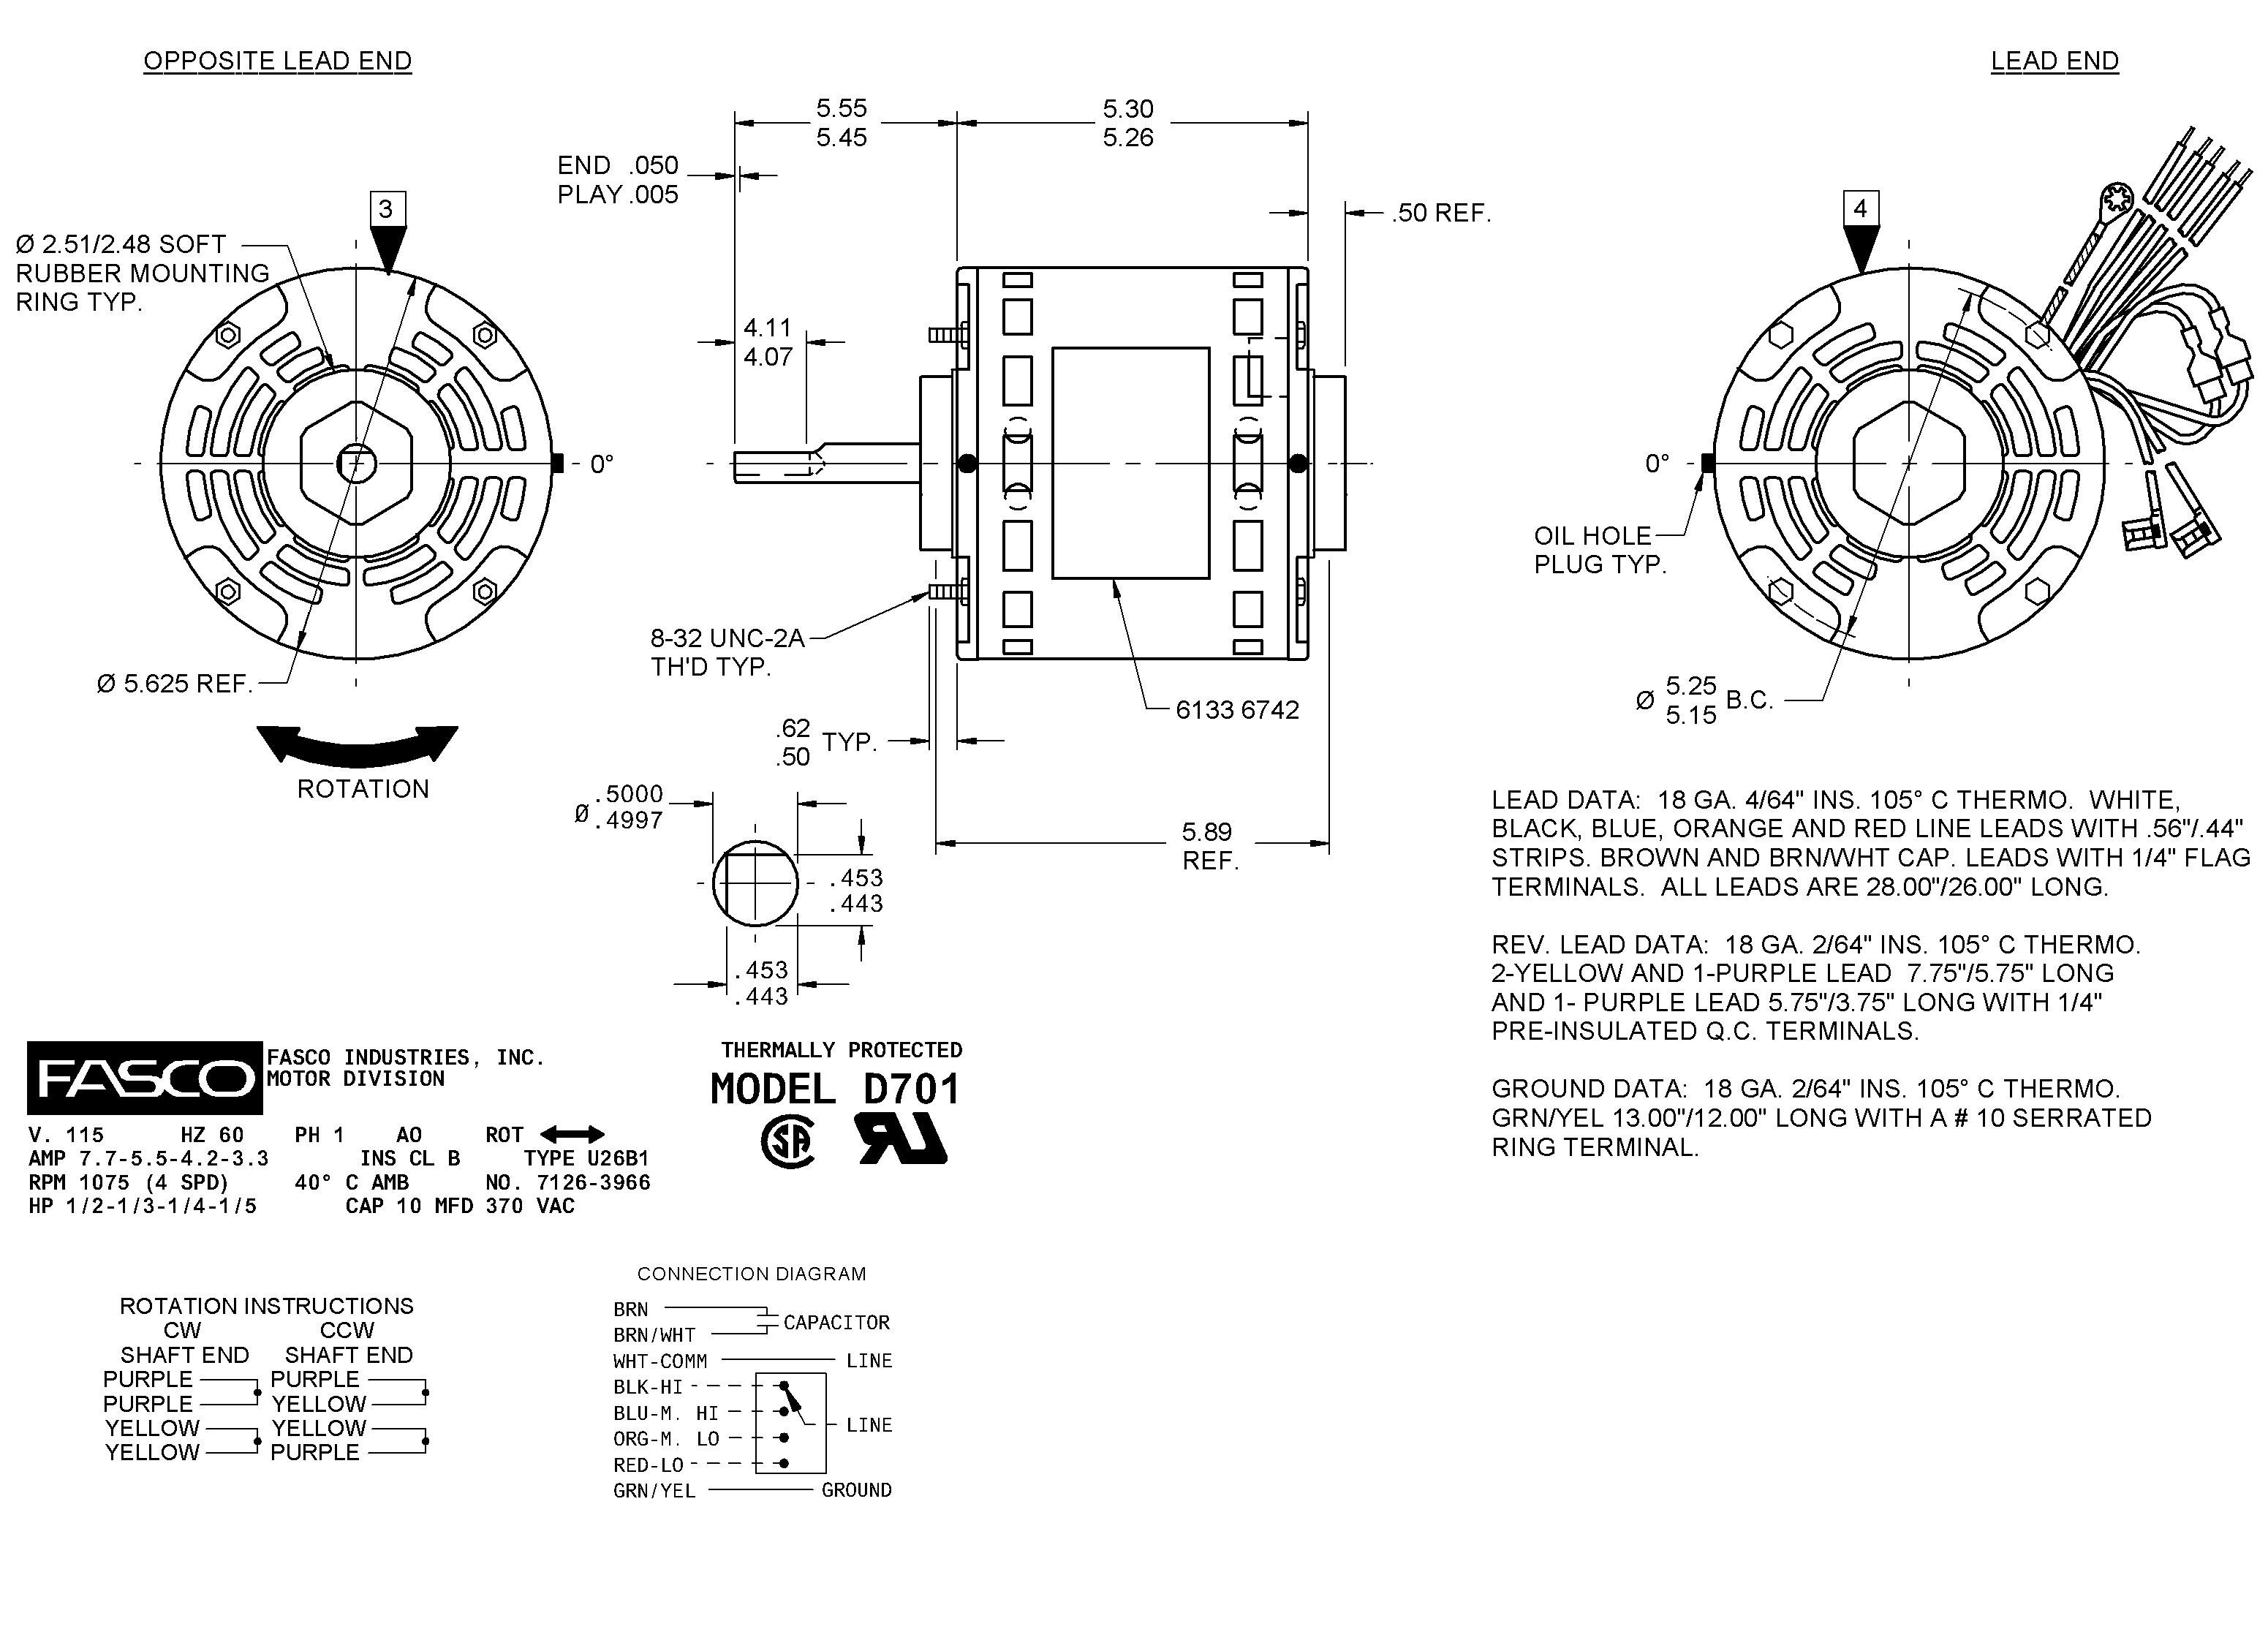 fasco fan motor wiring diagram Download-Hvac Motor Wiring Diagram Inspirationa Wiring Diagram for Fasco Blower Motor Refrence D701 Fasco 12 In 4-l